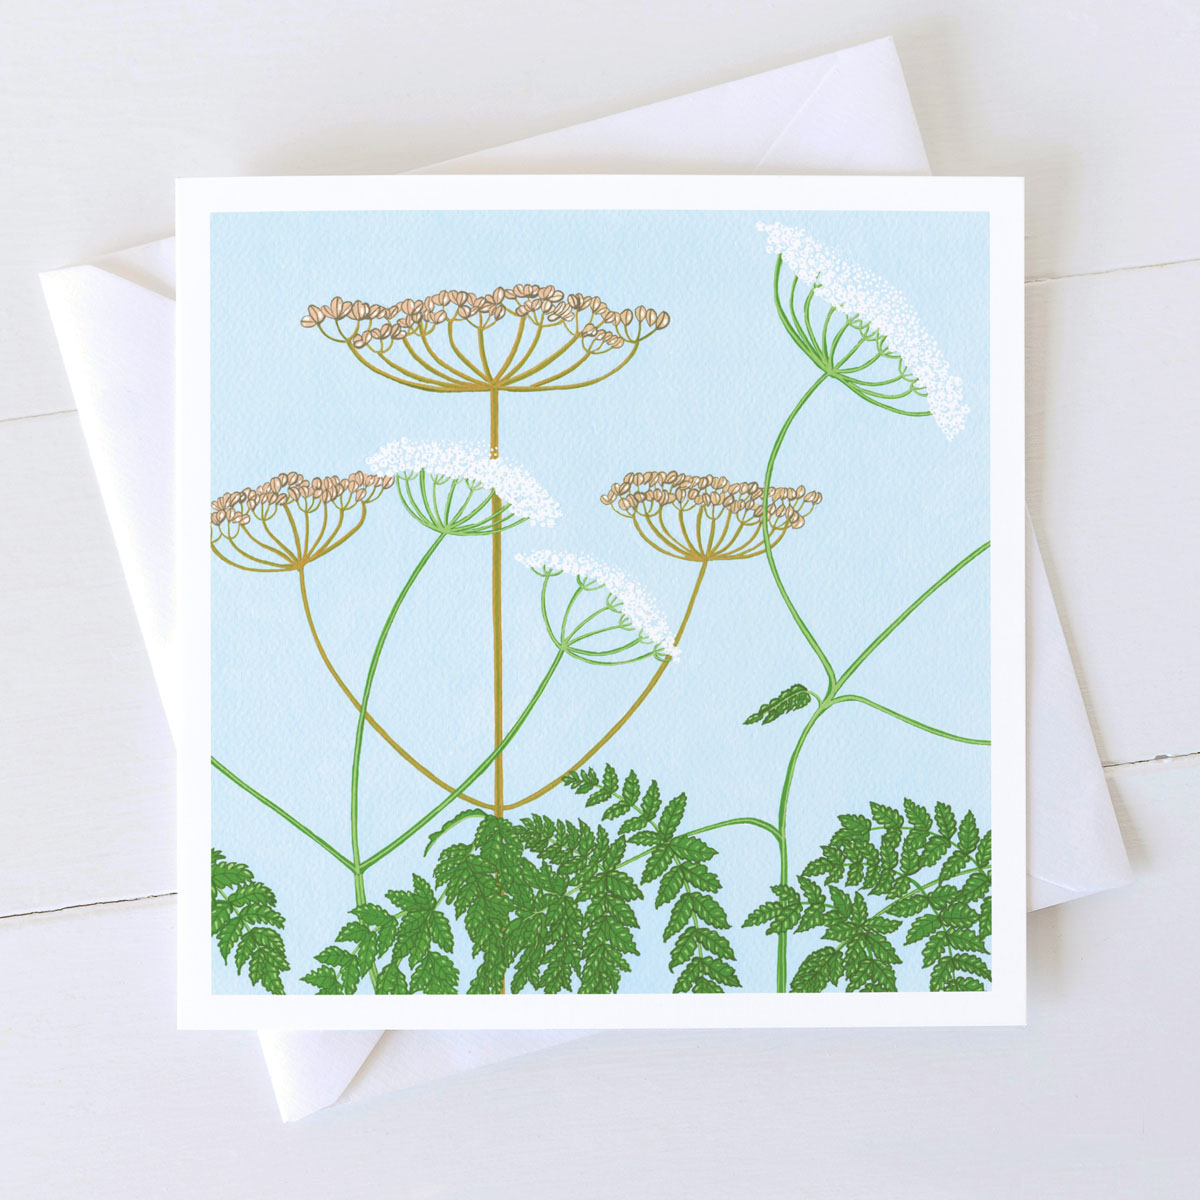 Cow Parsley Wild Plant Greeting Card